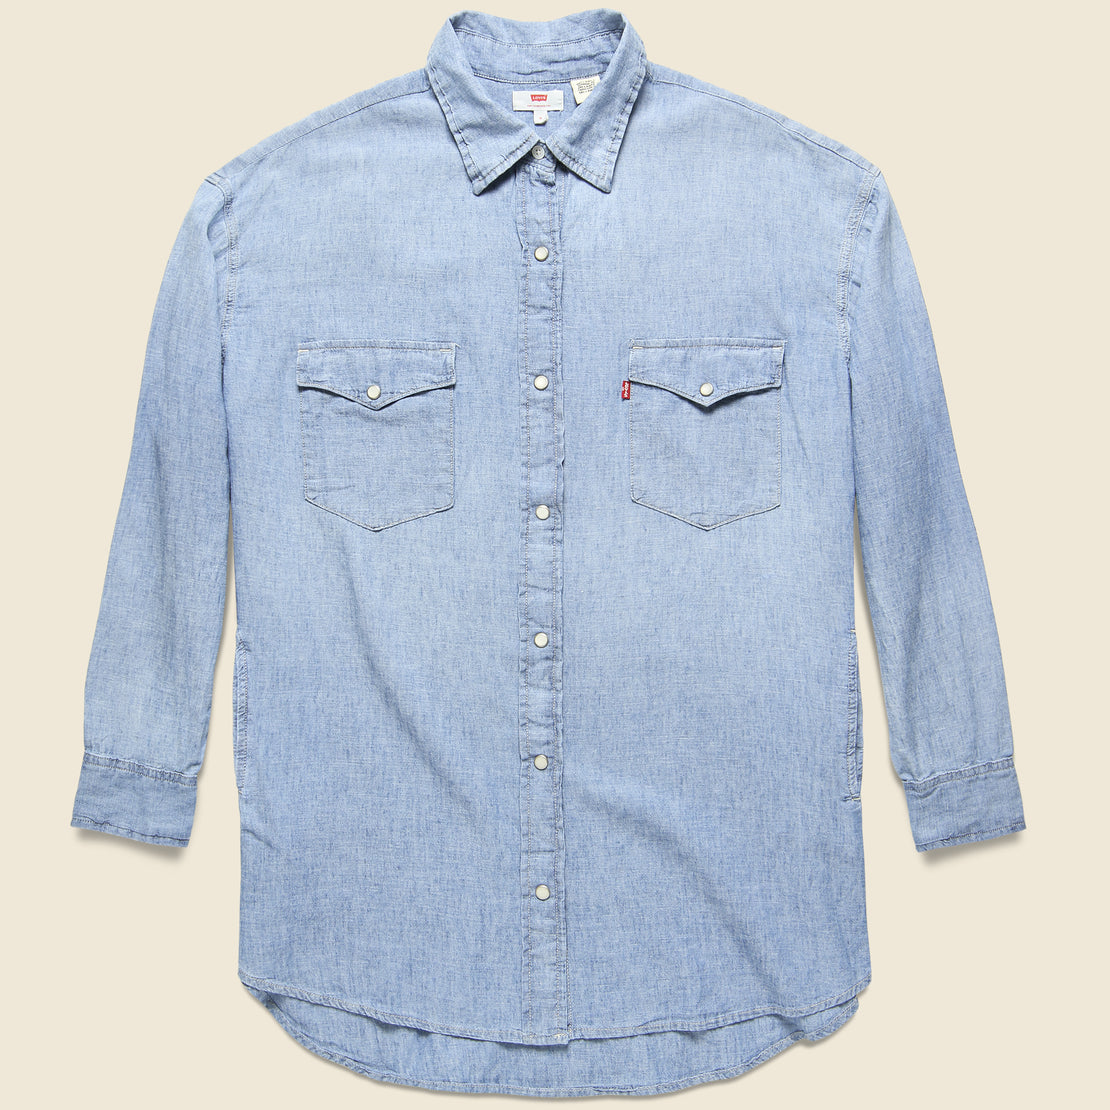 Levis Premium Cotton/Linen Shirt - Crystal Ball